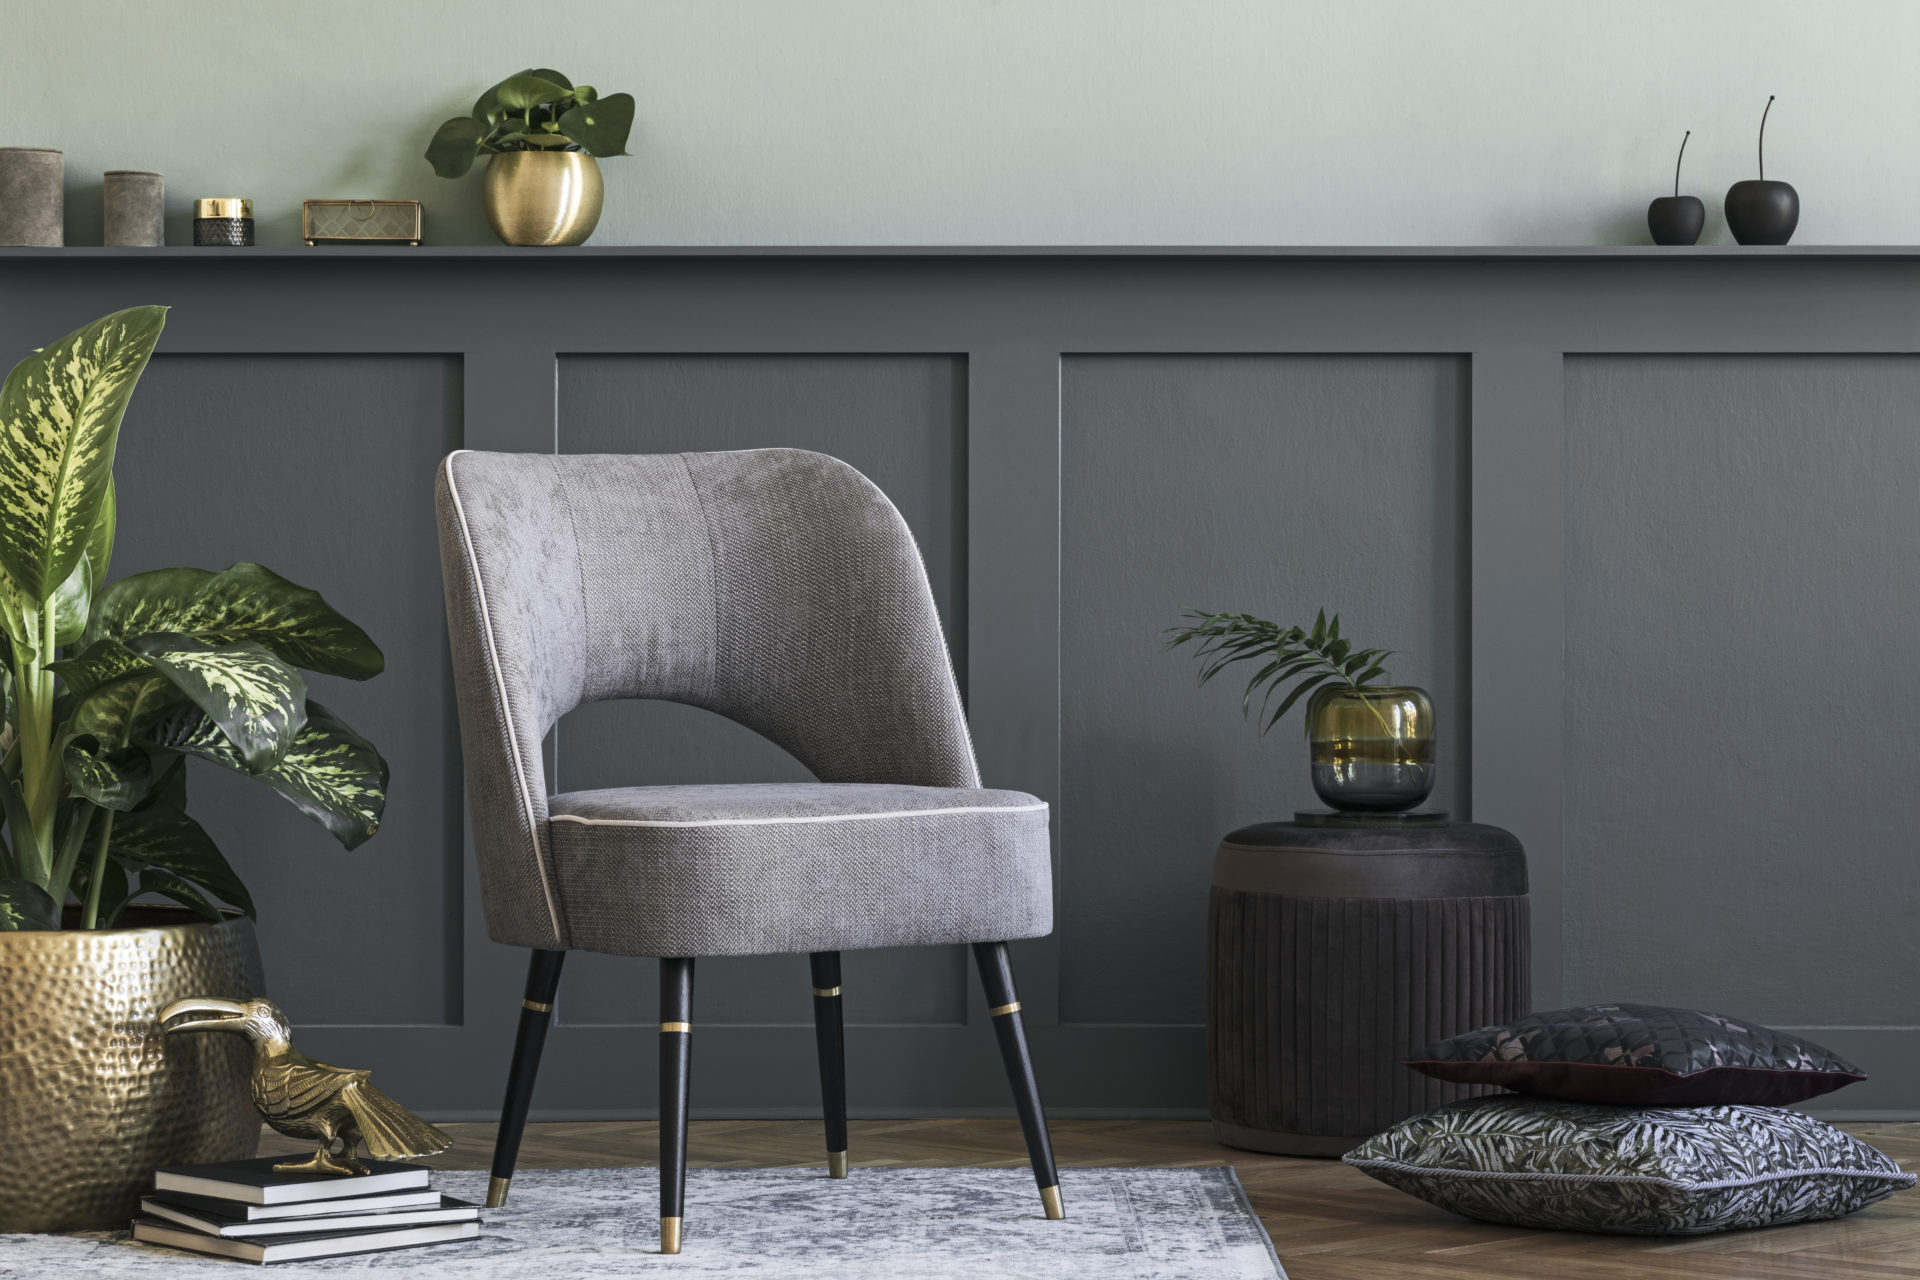 Modern Composition Of Living Room With Design Gray Armchair, Furniture, Gold Pot With Beautiful Plant And Elegant Personal Accessories. Gray Wall Panelling With Shelf. Stylish Home Staging. Template.